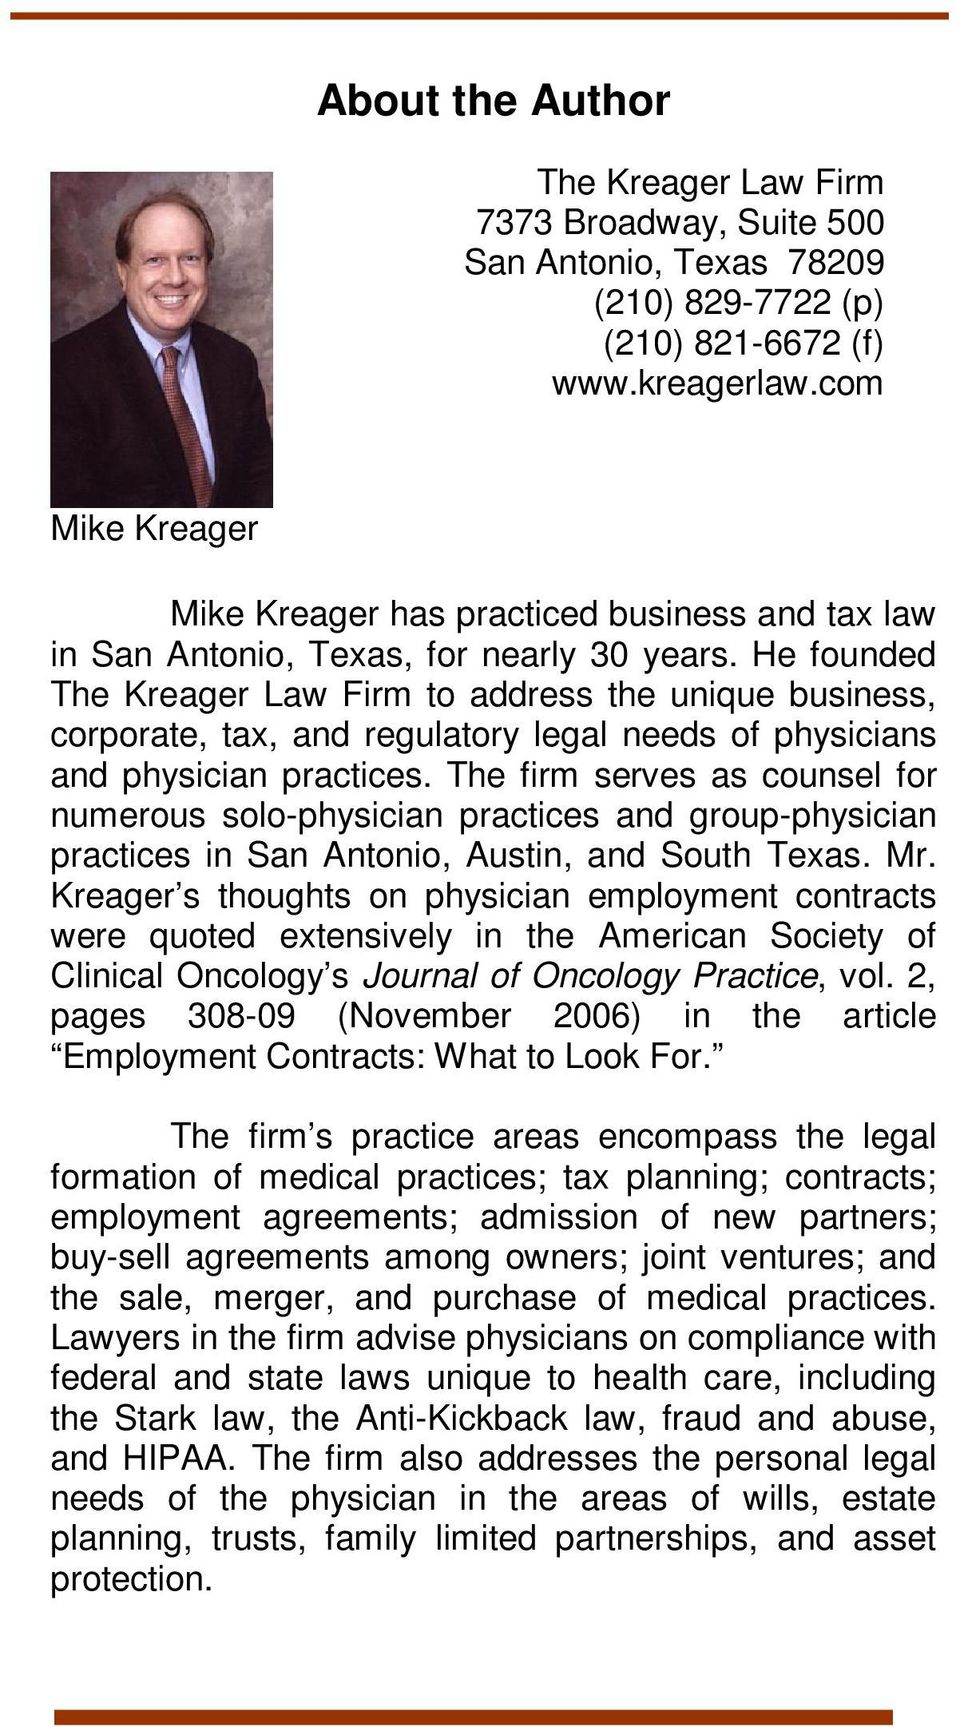 He founded The Kreager Law Firm to address the unique business, corporate, tax, and regulatory legal needs of physicians and physician practices.